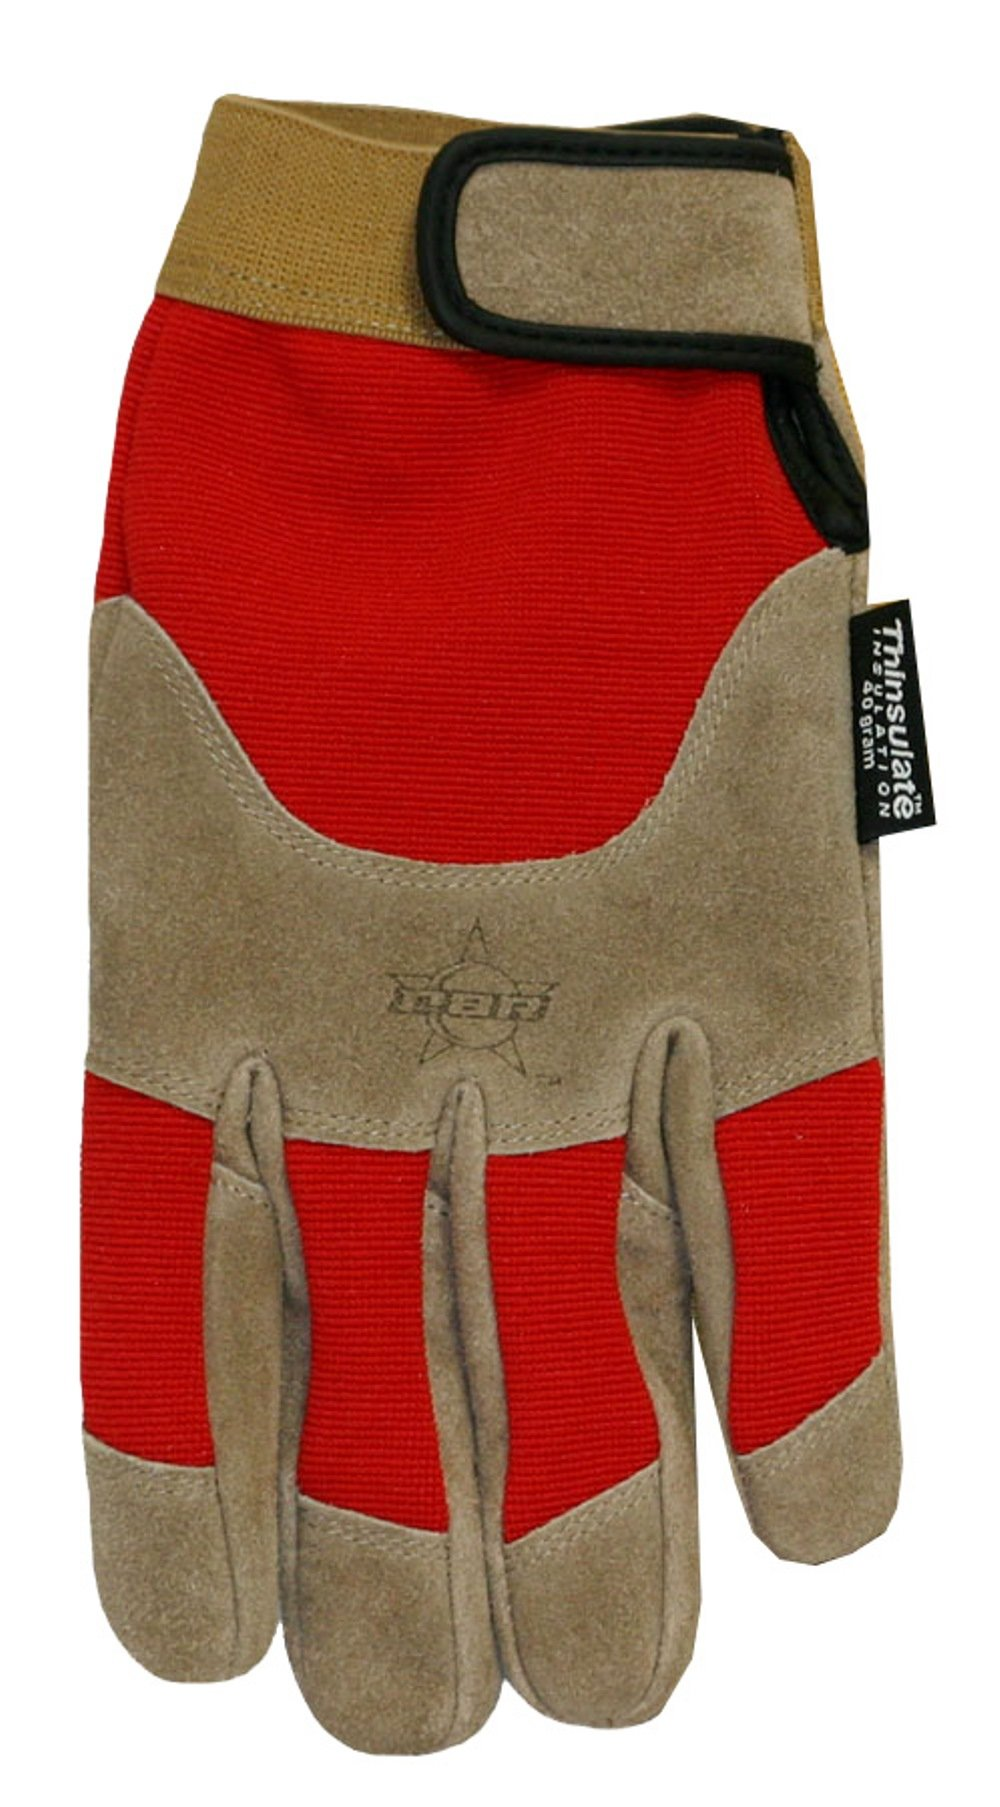 Professional Bull Rider (PBR) Suede Cowhide Leather Work Glove with Thinsulate Insulation, Medium, Brown/Red, PB200